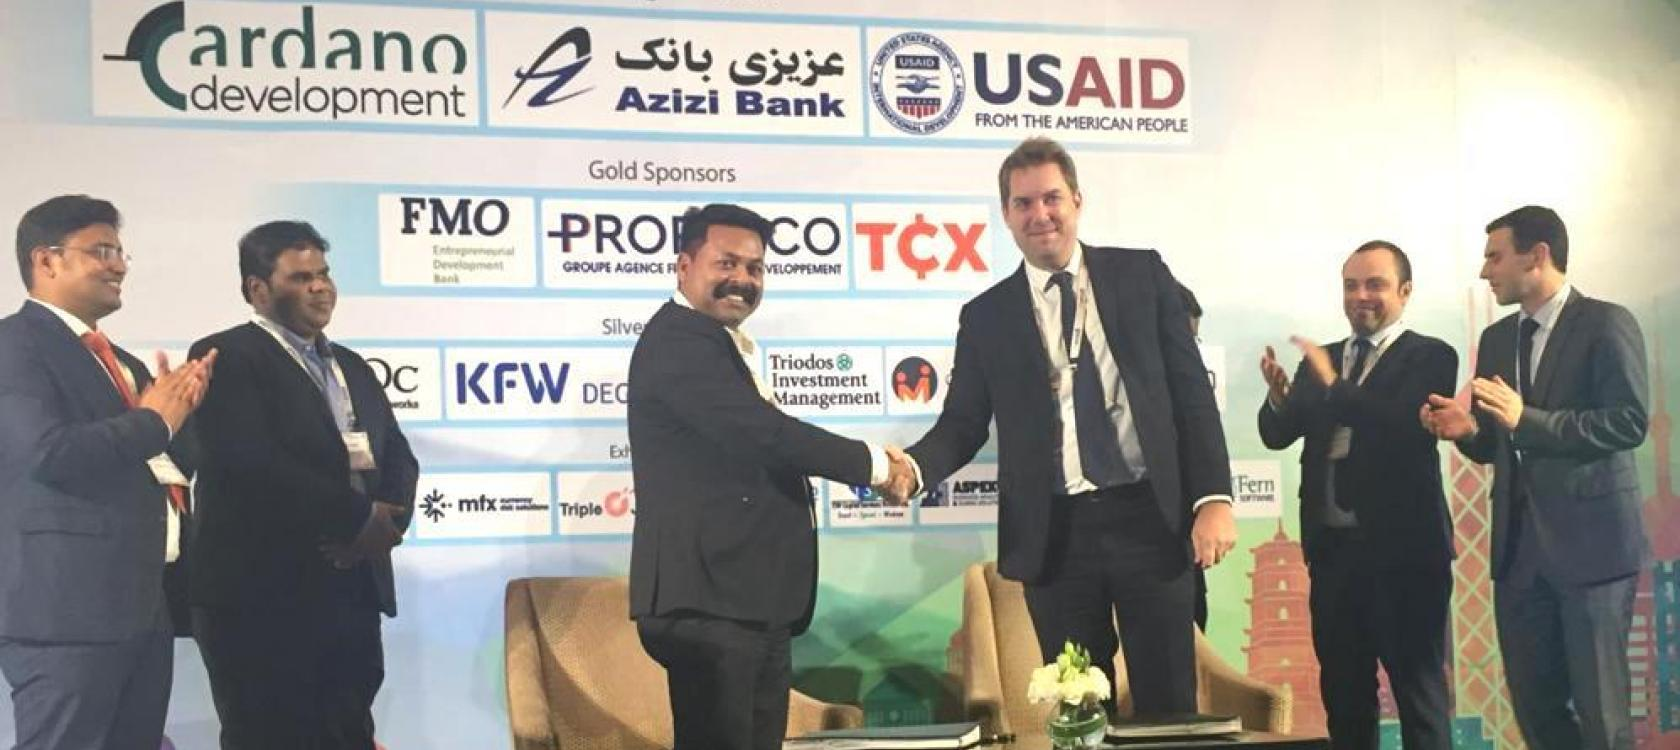 Thomas Eloy, Proparco's Global Head of Lending Operations, and Dibyajyoti Pattanaik, Director of Annapurna, sign an agreement for a  USD 15 million credit line, during Afiforum 2020